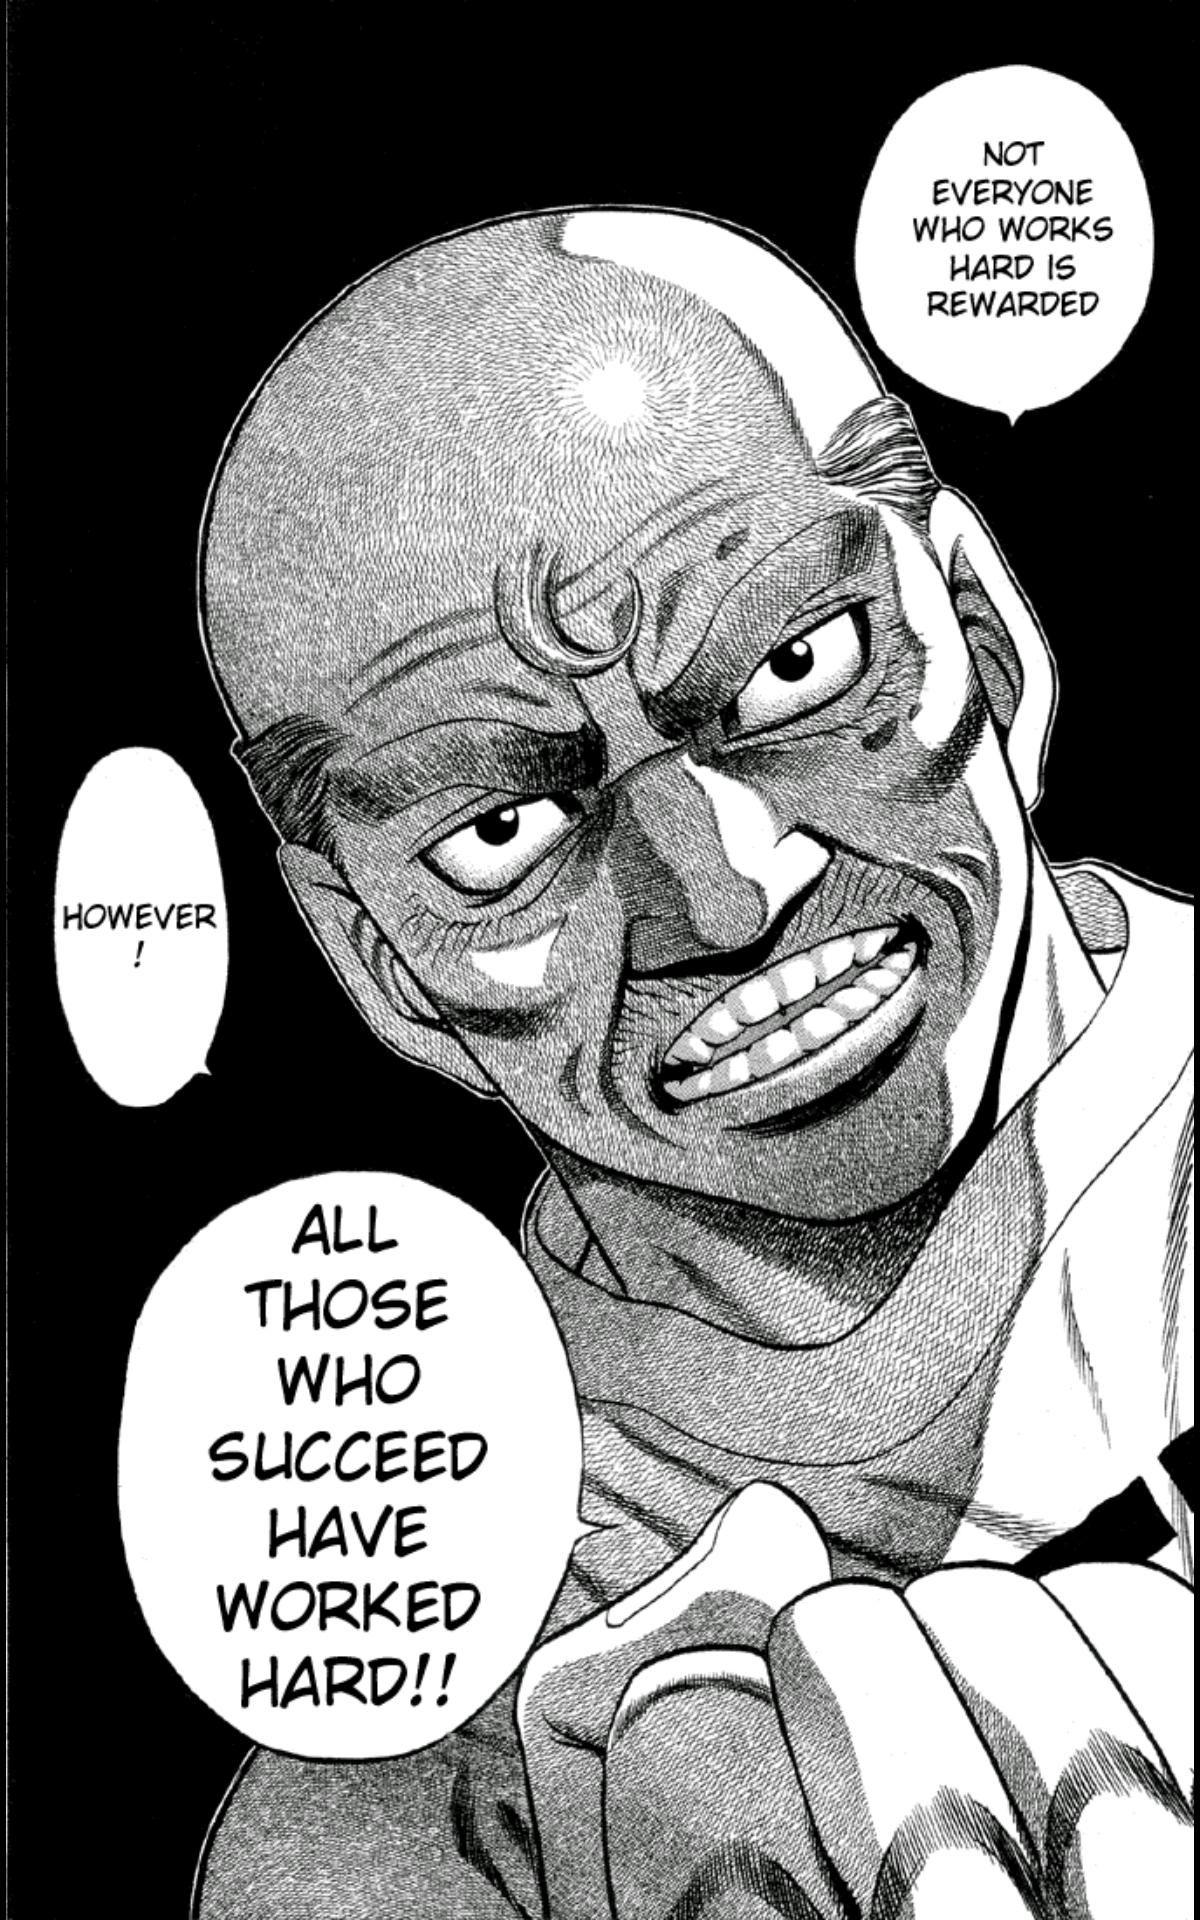 Image Wise words from the Manga Hajime no ippo http ...